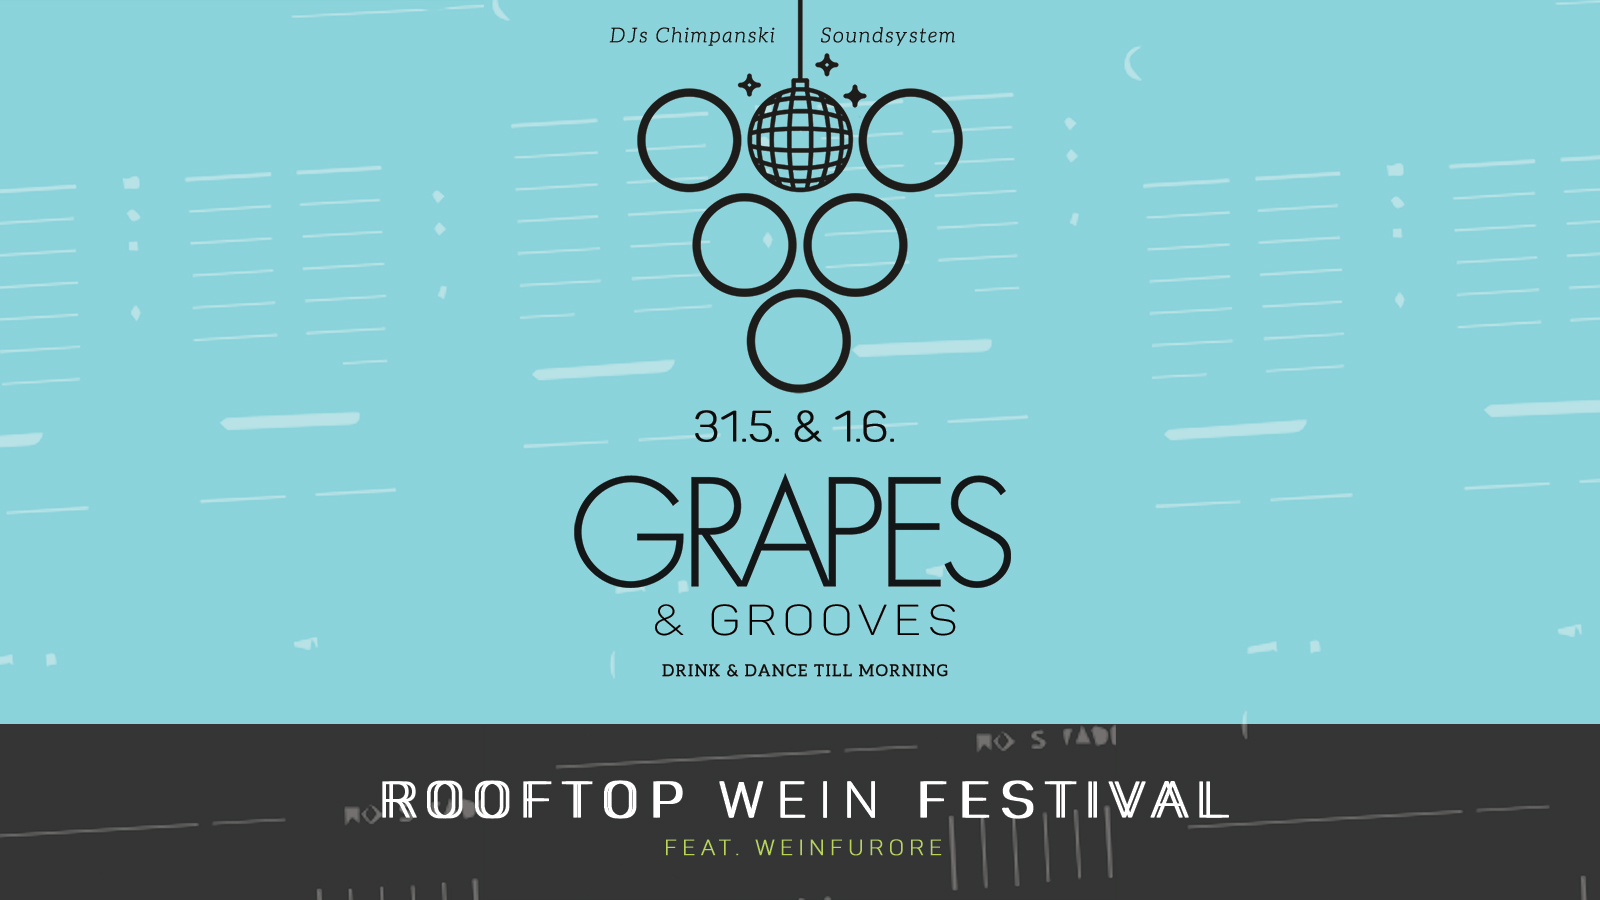 Grapes & Grooves Rooftop Wein Festival 2019